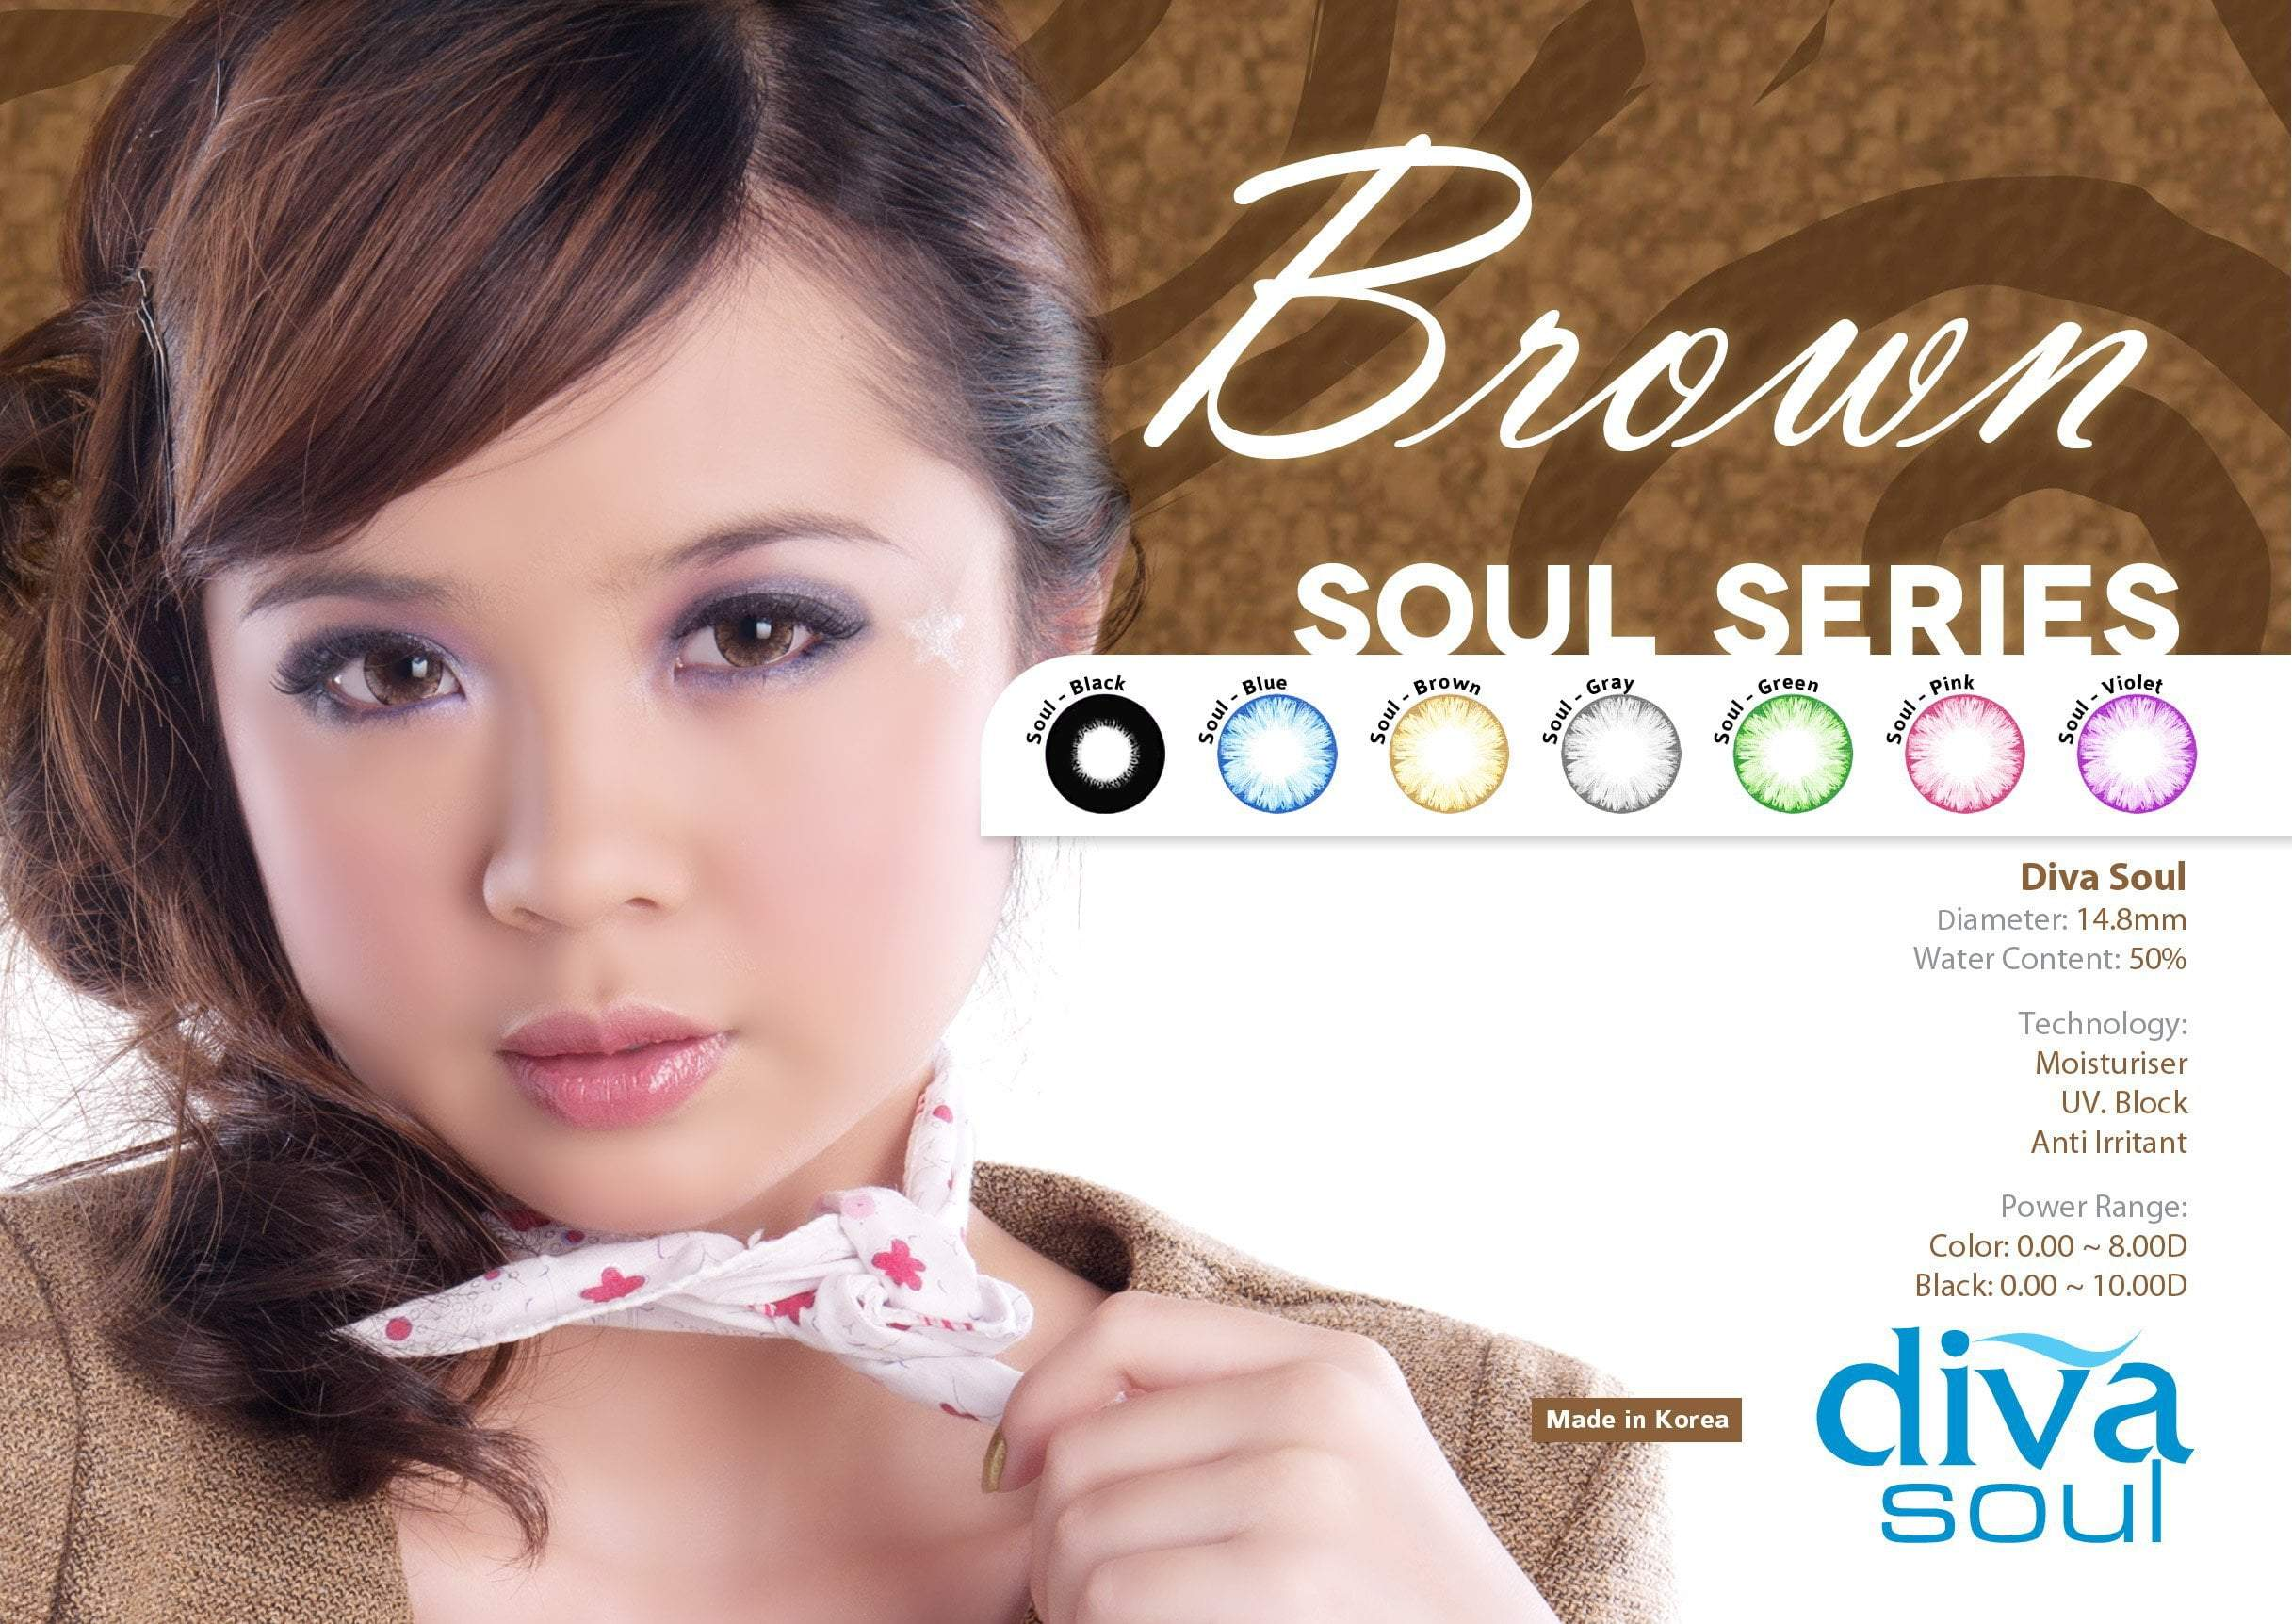 COLORED CONTACTS DIVA SOUL BROWN - Lens Beauty Queen